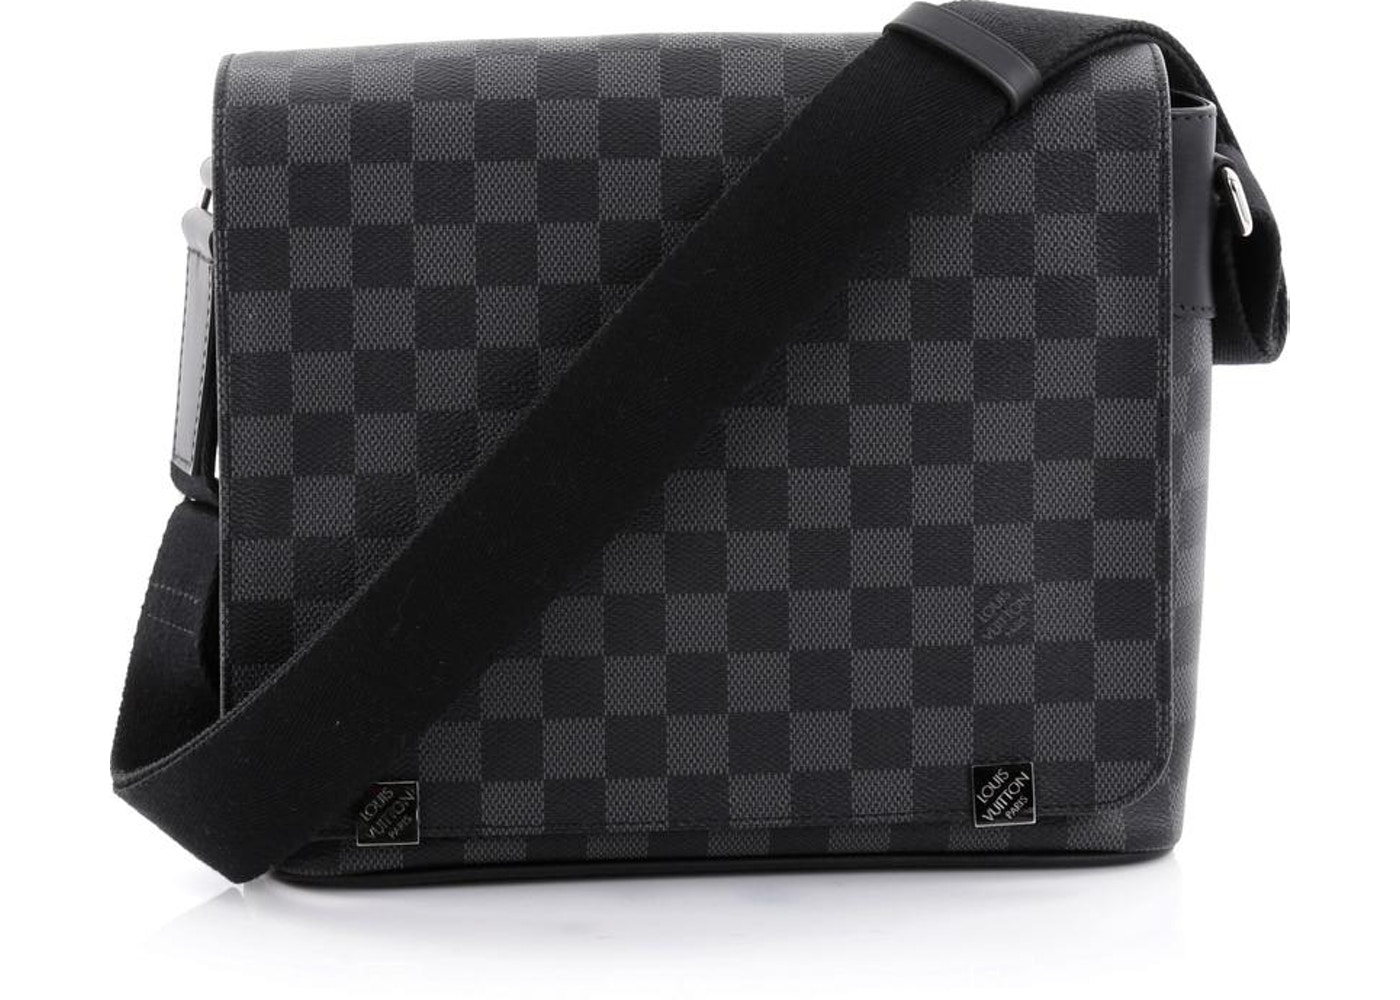 1e678370a437 Louis Vuitton Messenger District Damier Graphite NM Black. Damier Graphite  NM Black